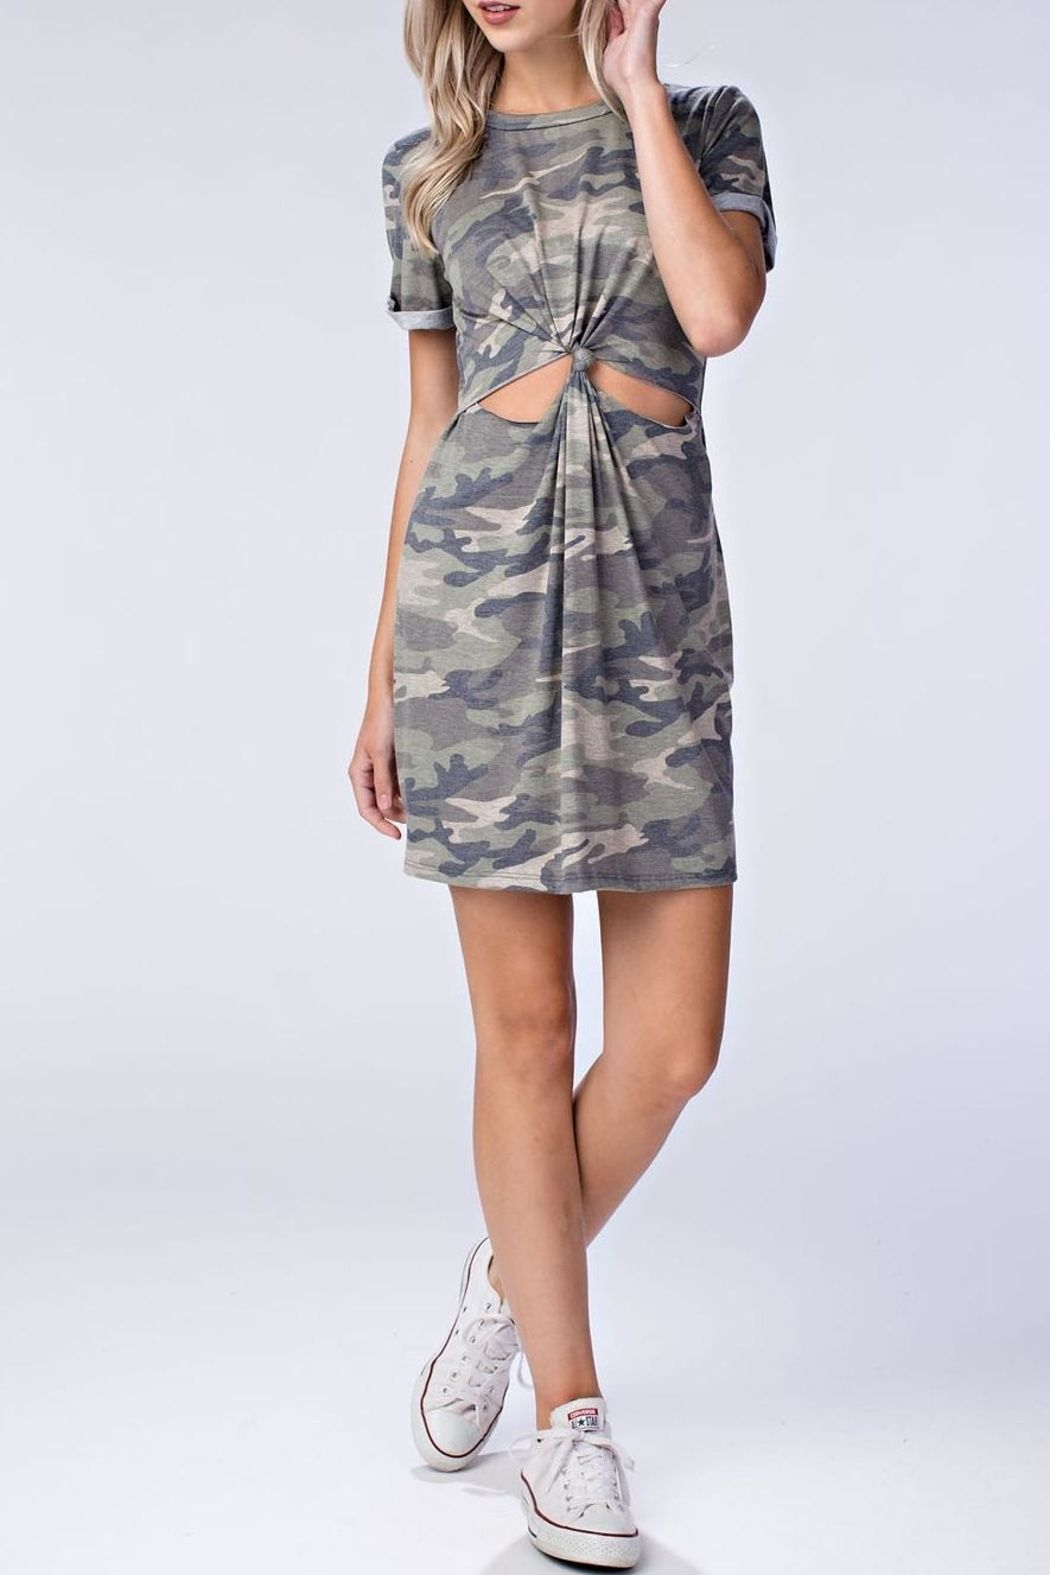 9fcb5885ca5 Camouflage t-shirt dress with front twist cut out. Camo Cut Out Dress by Honey  Punch. Clothing - Dresses - Cut-Out Clothing - Dresses - T-Shirt New York  ...